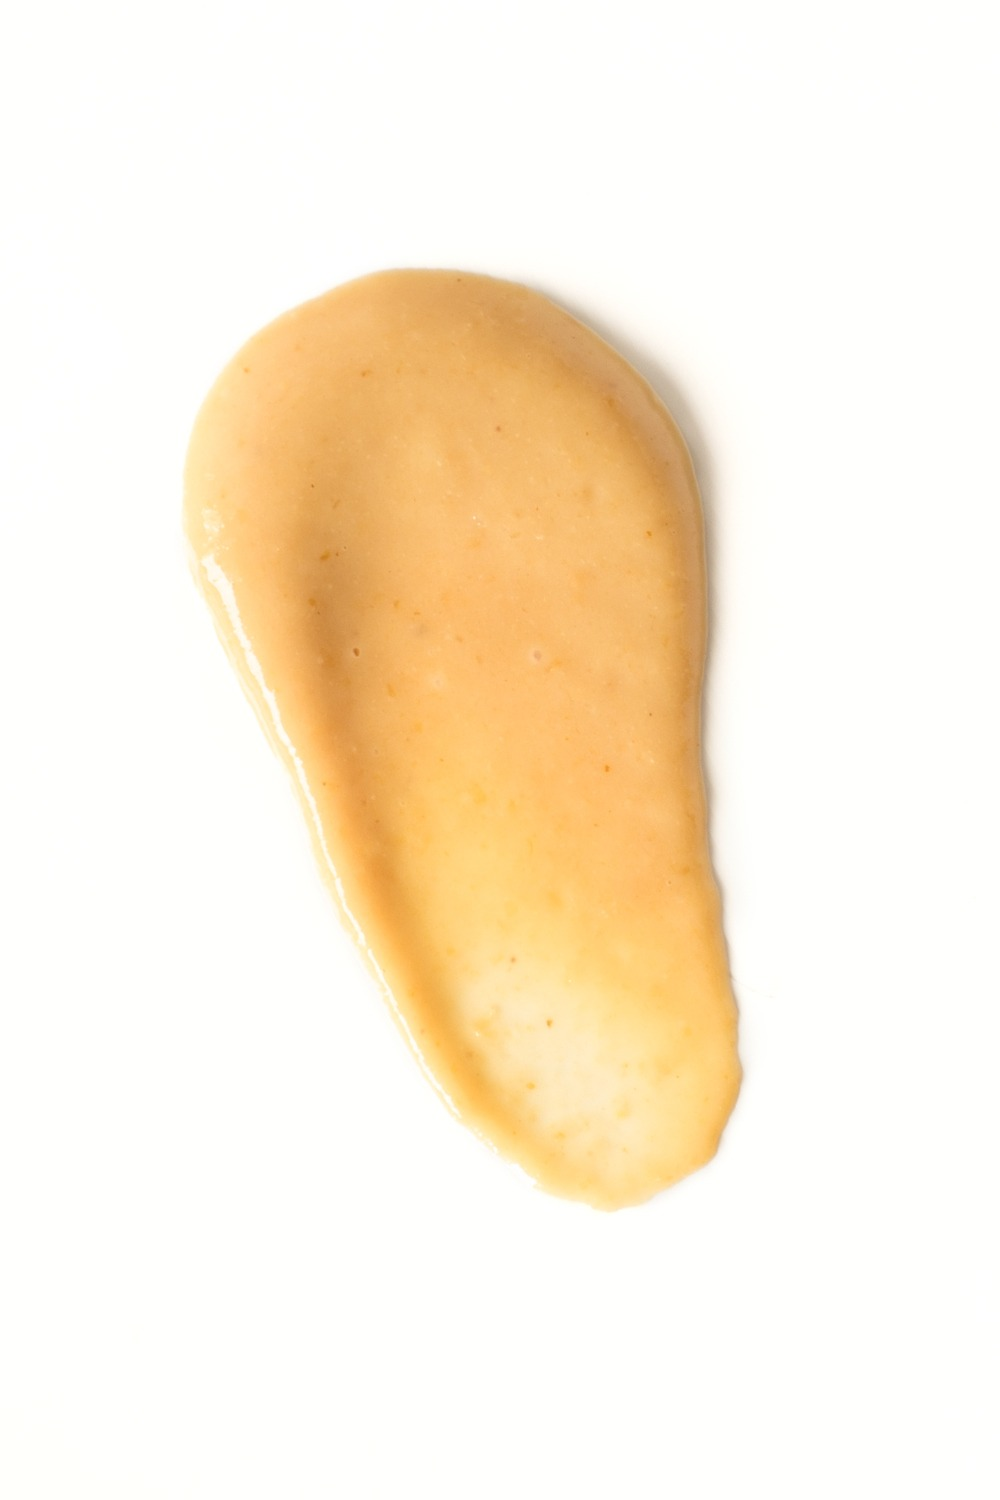 Honey Dijon mustard smear